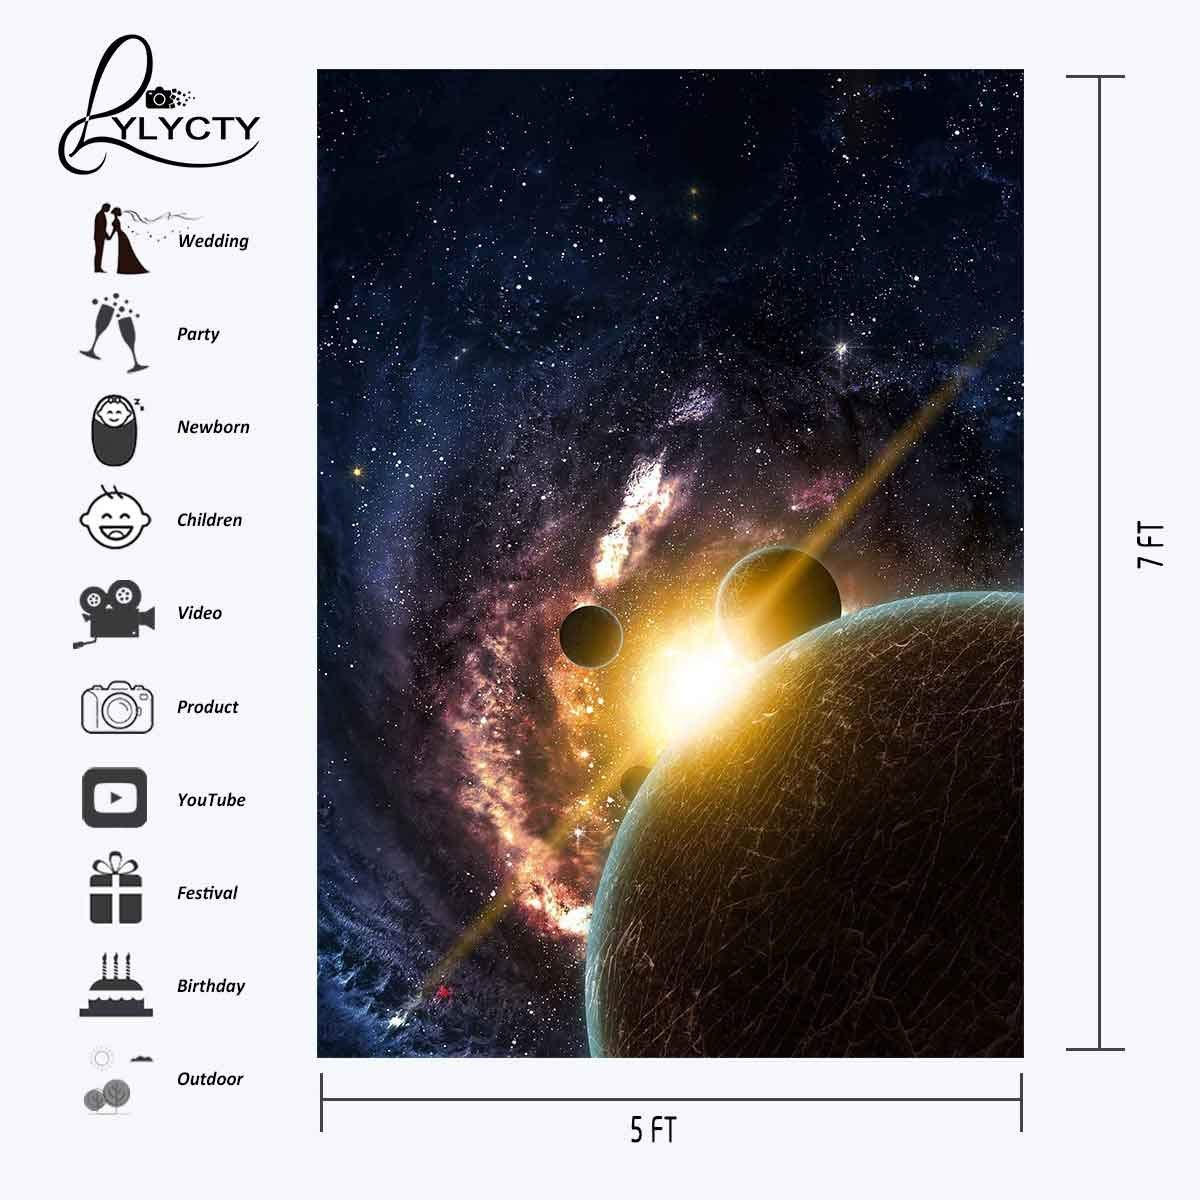 Image 3 - 5x7ft Starry Sky Backdrop Dark Color Cosmic Science Photography Background and Studio Photography Backdrop Props-in Photo Studio Accessories from Consumer Electronics